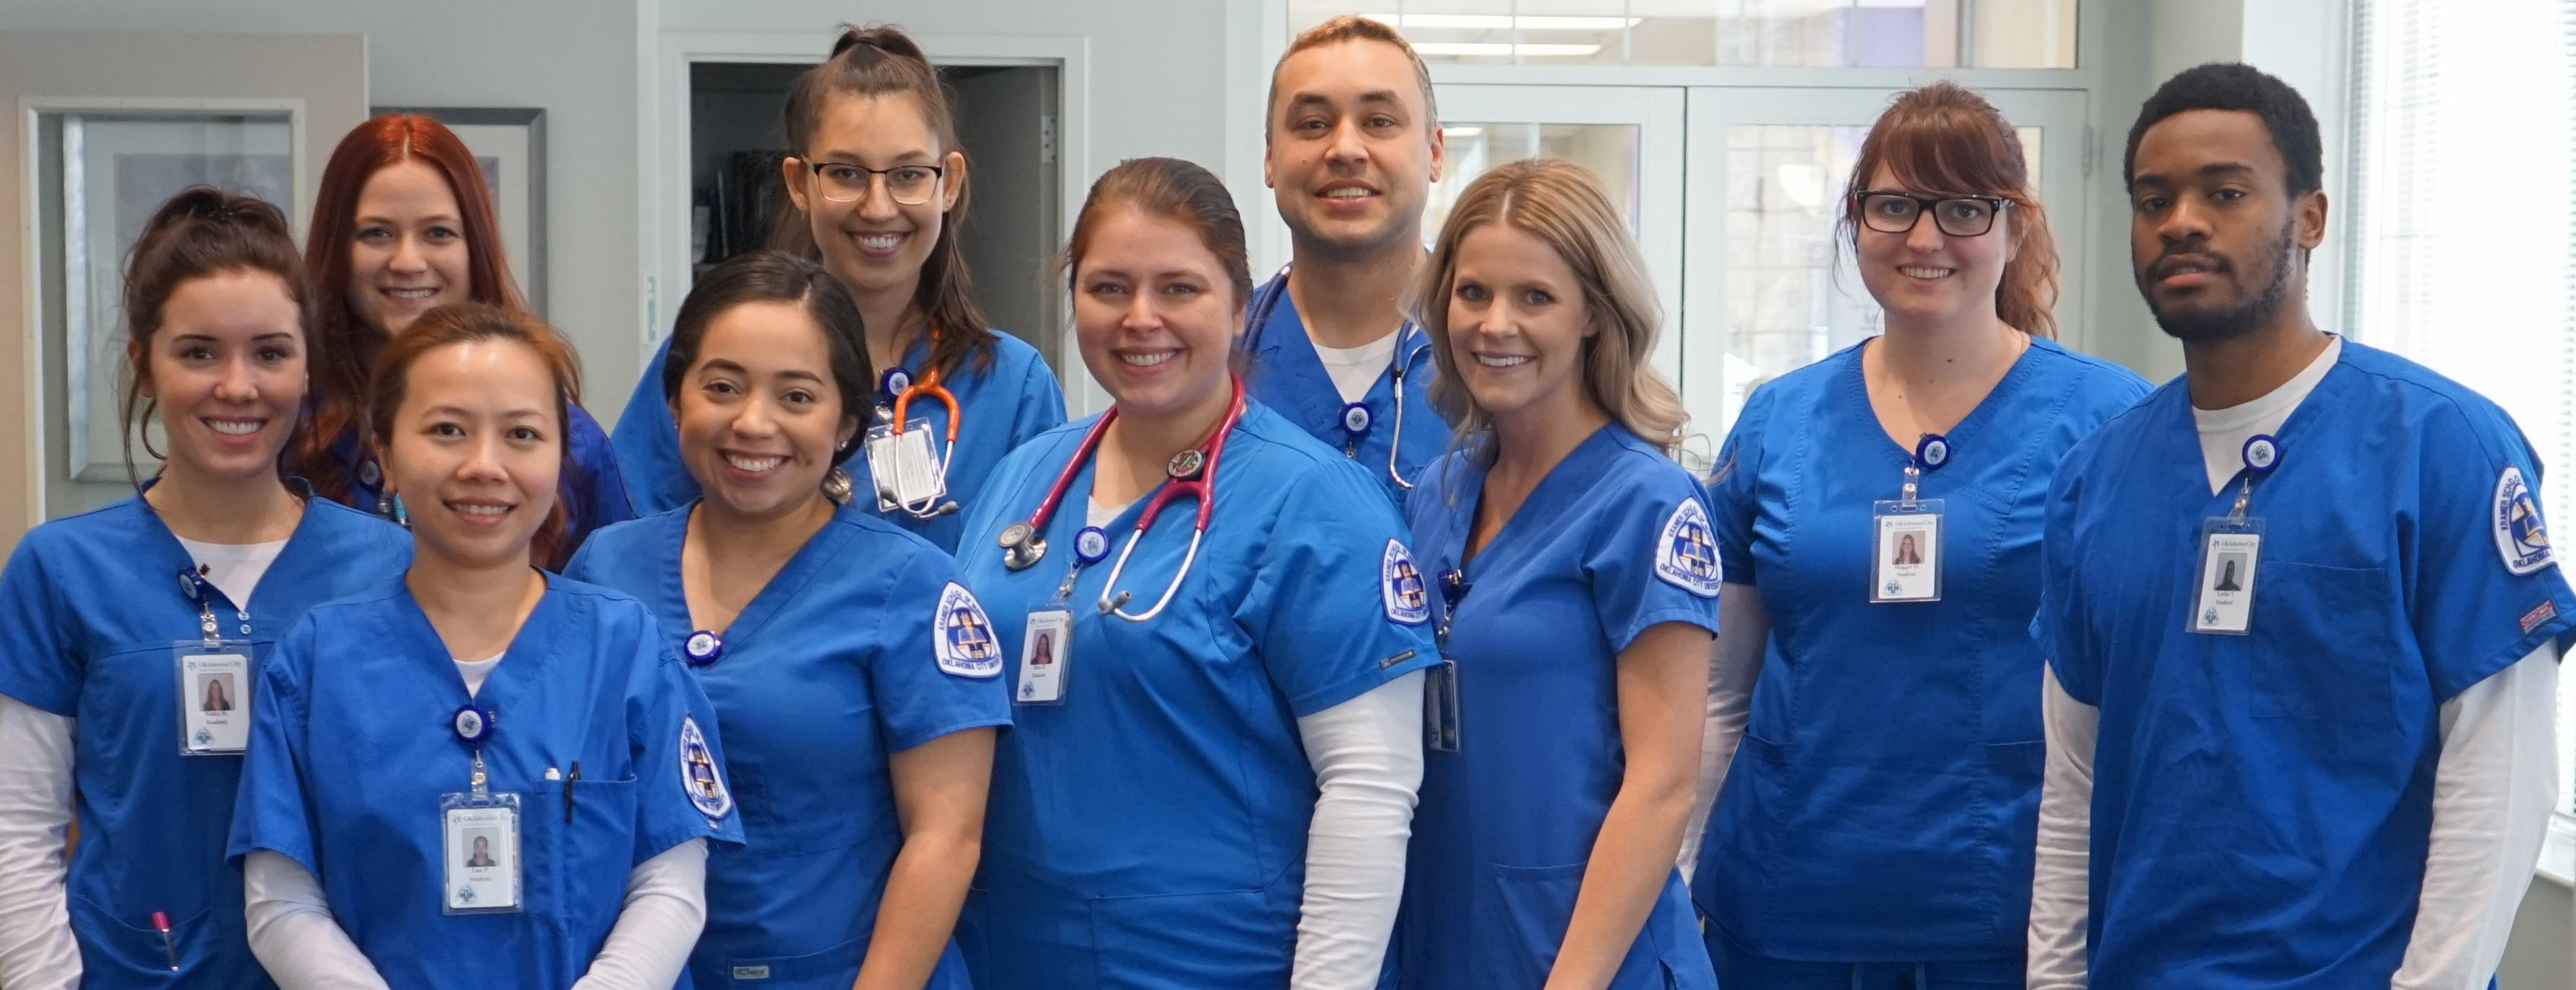 Clinical Students Path to Care